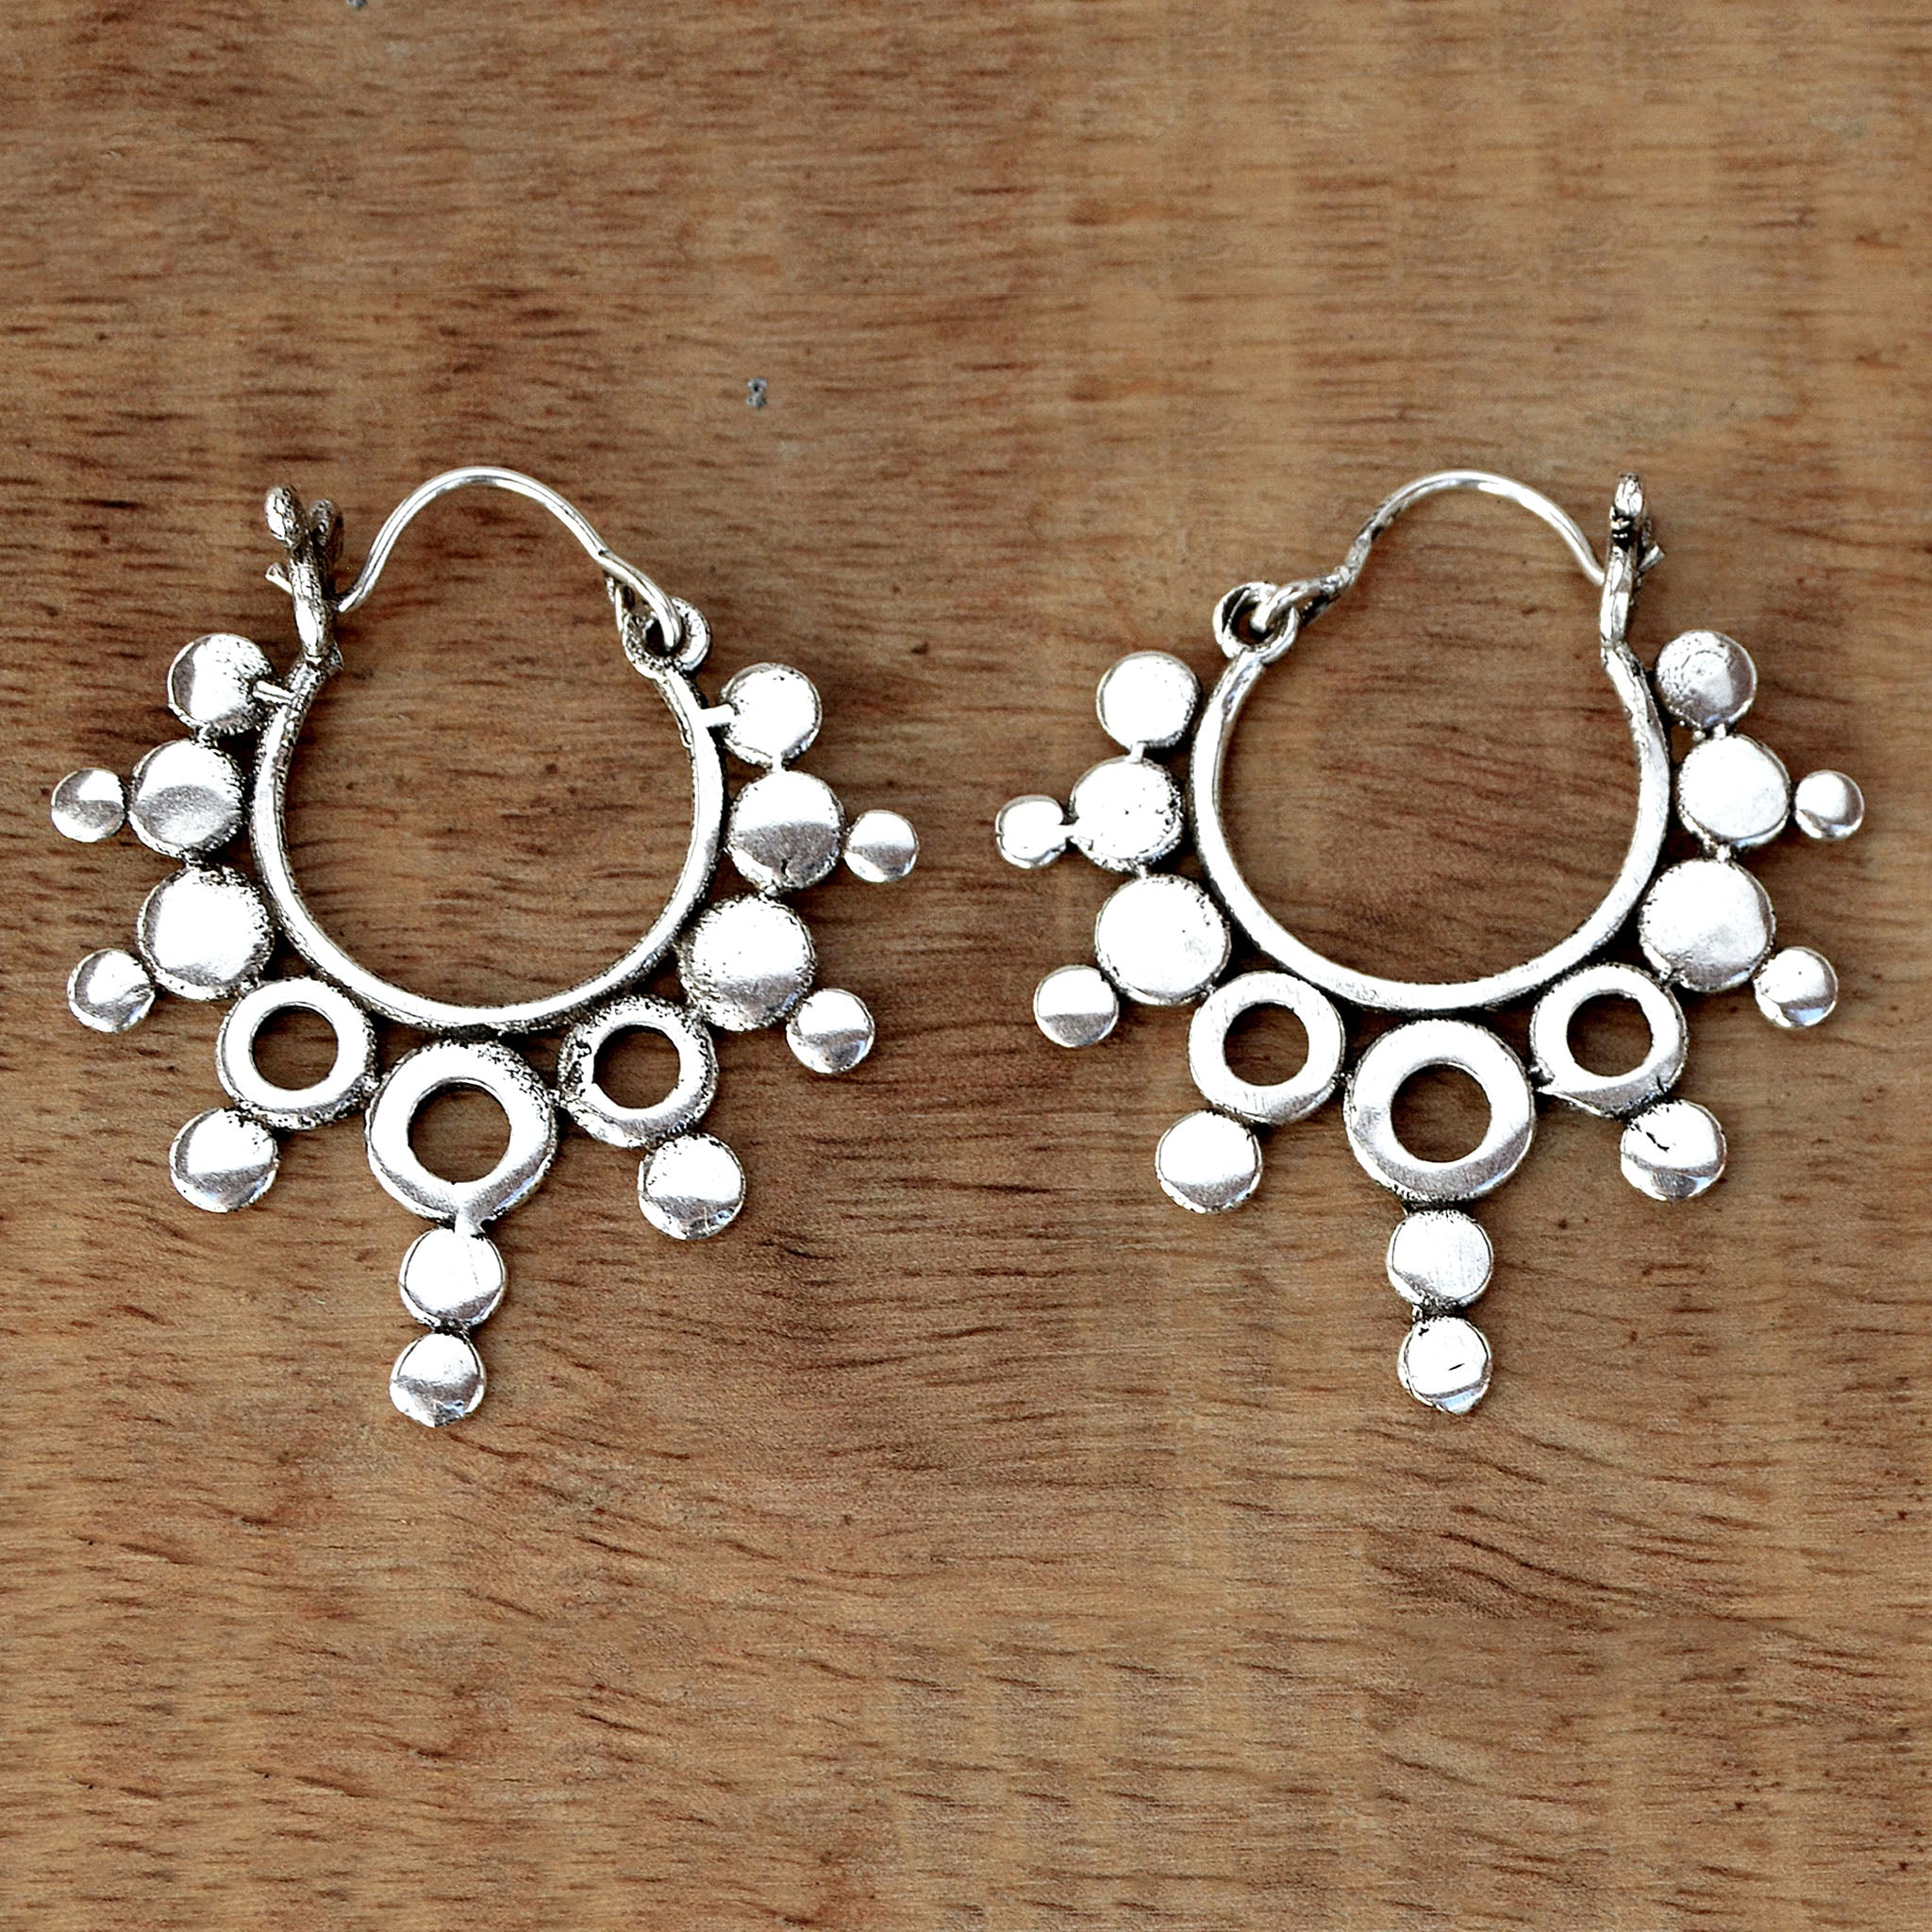 plated product silver jaipur brass mart metal detail jhumki earrings oxidised gold rajasthani